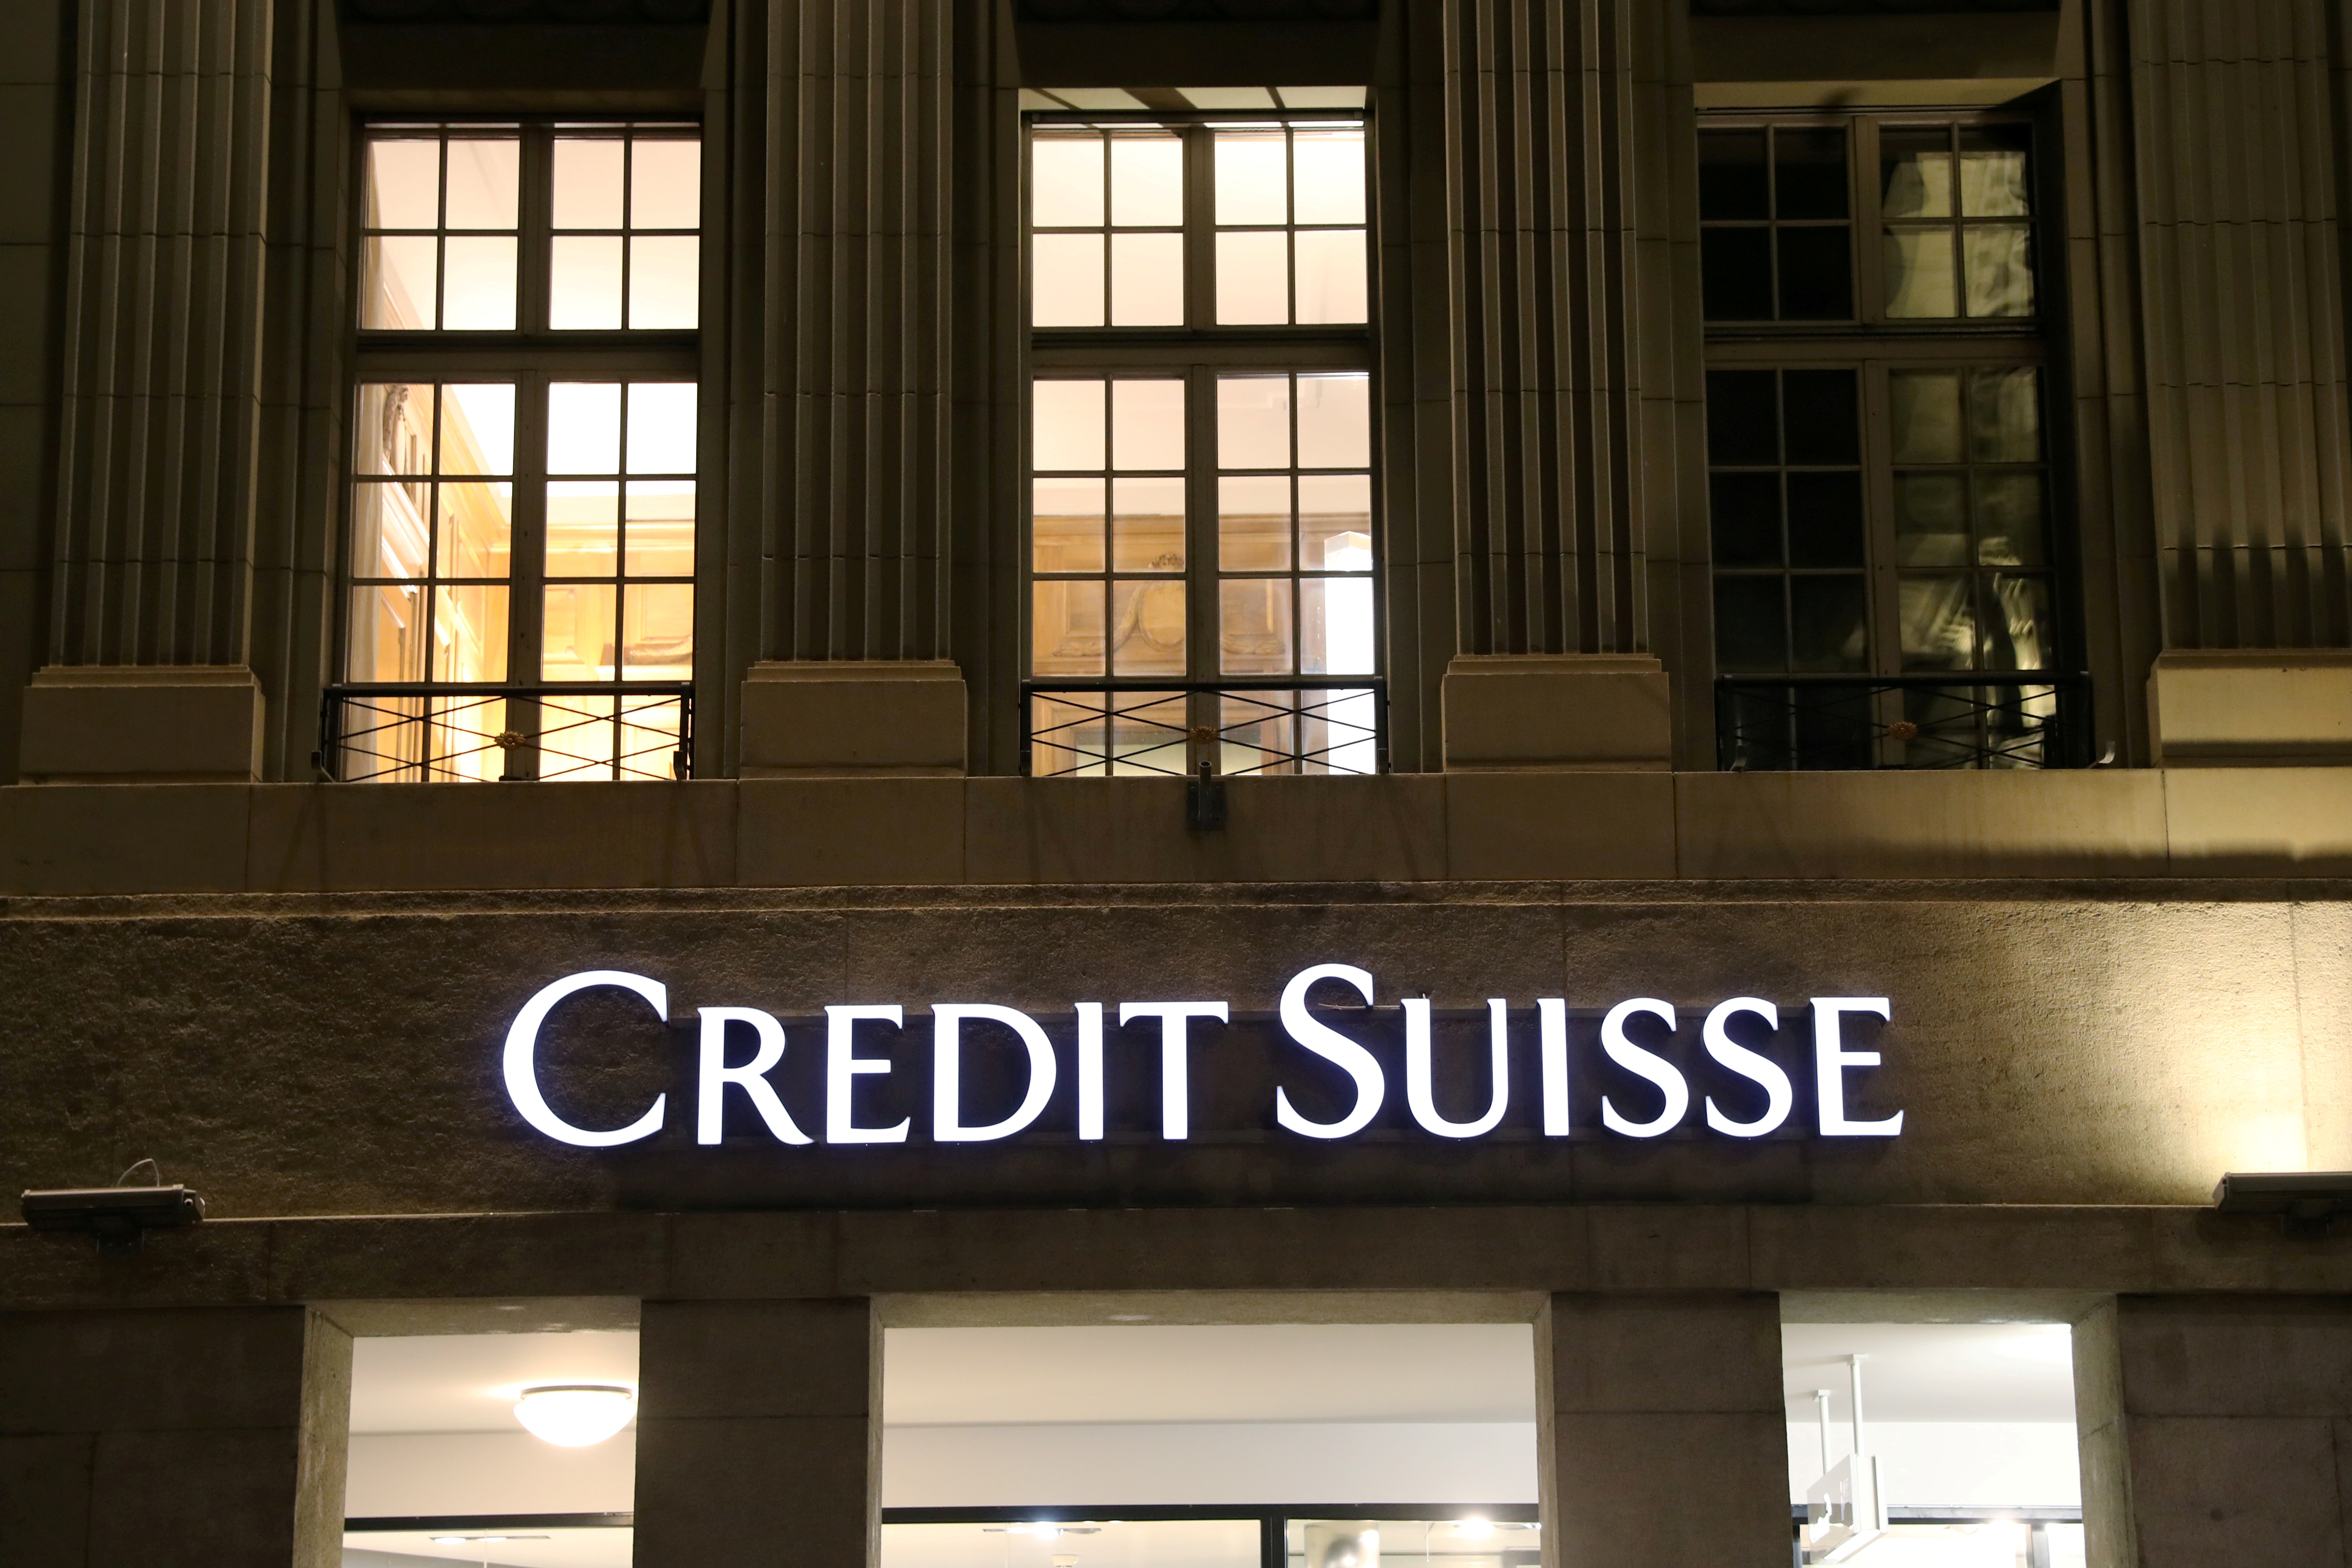 The logo of Swiss bank Credit Suisse is seen at a branch office in Bern, Switzerland October 28, 2020. REUTERS/Arnd Wiegmann/File Photo